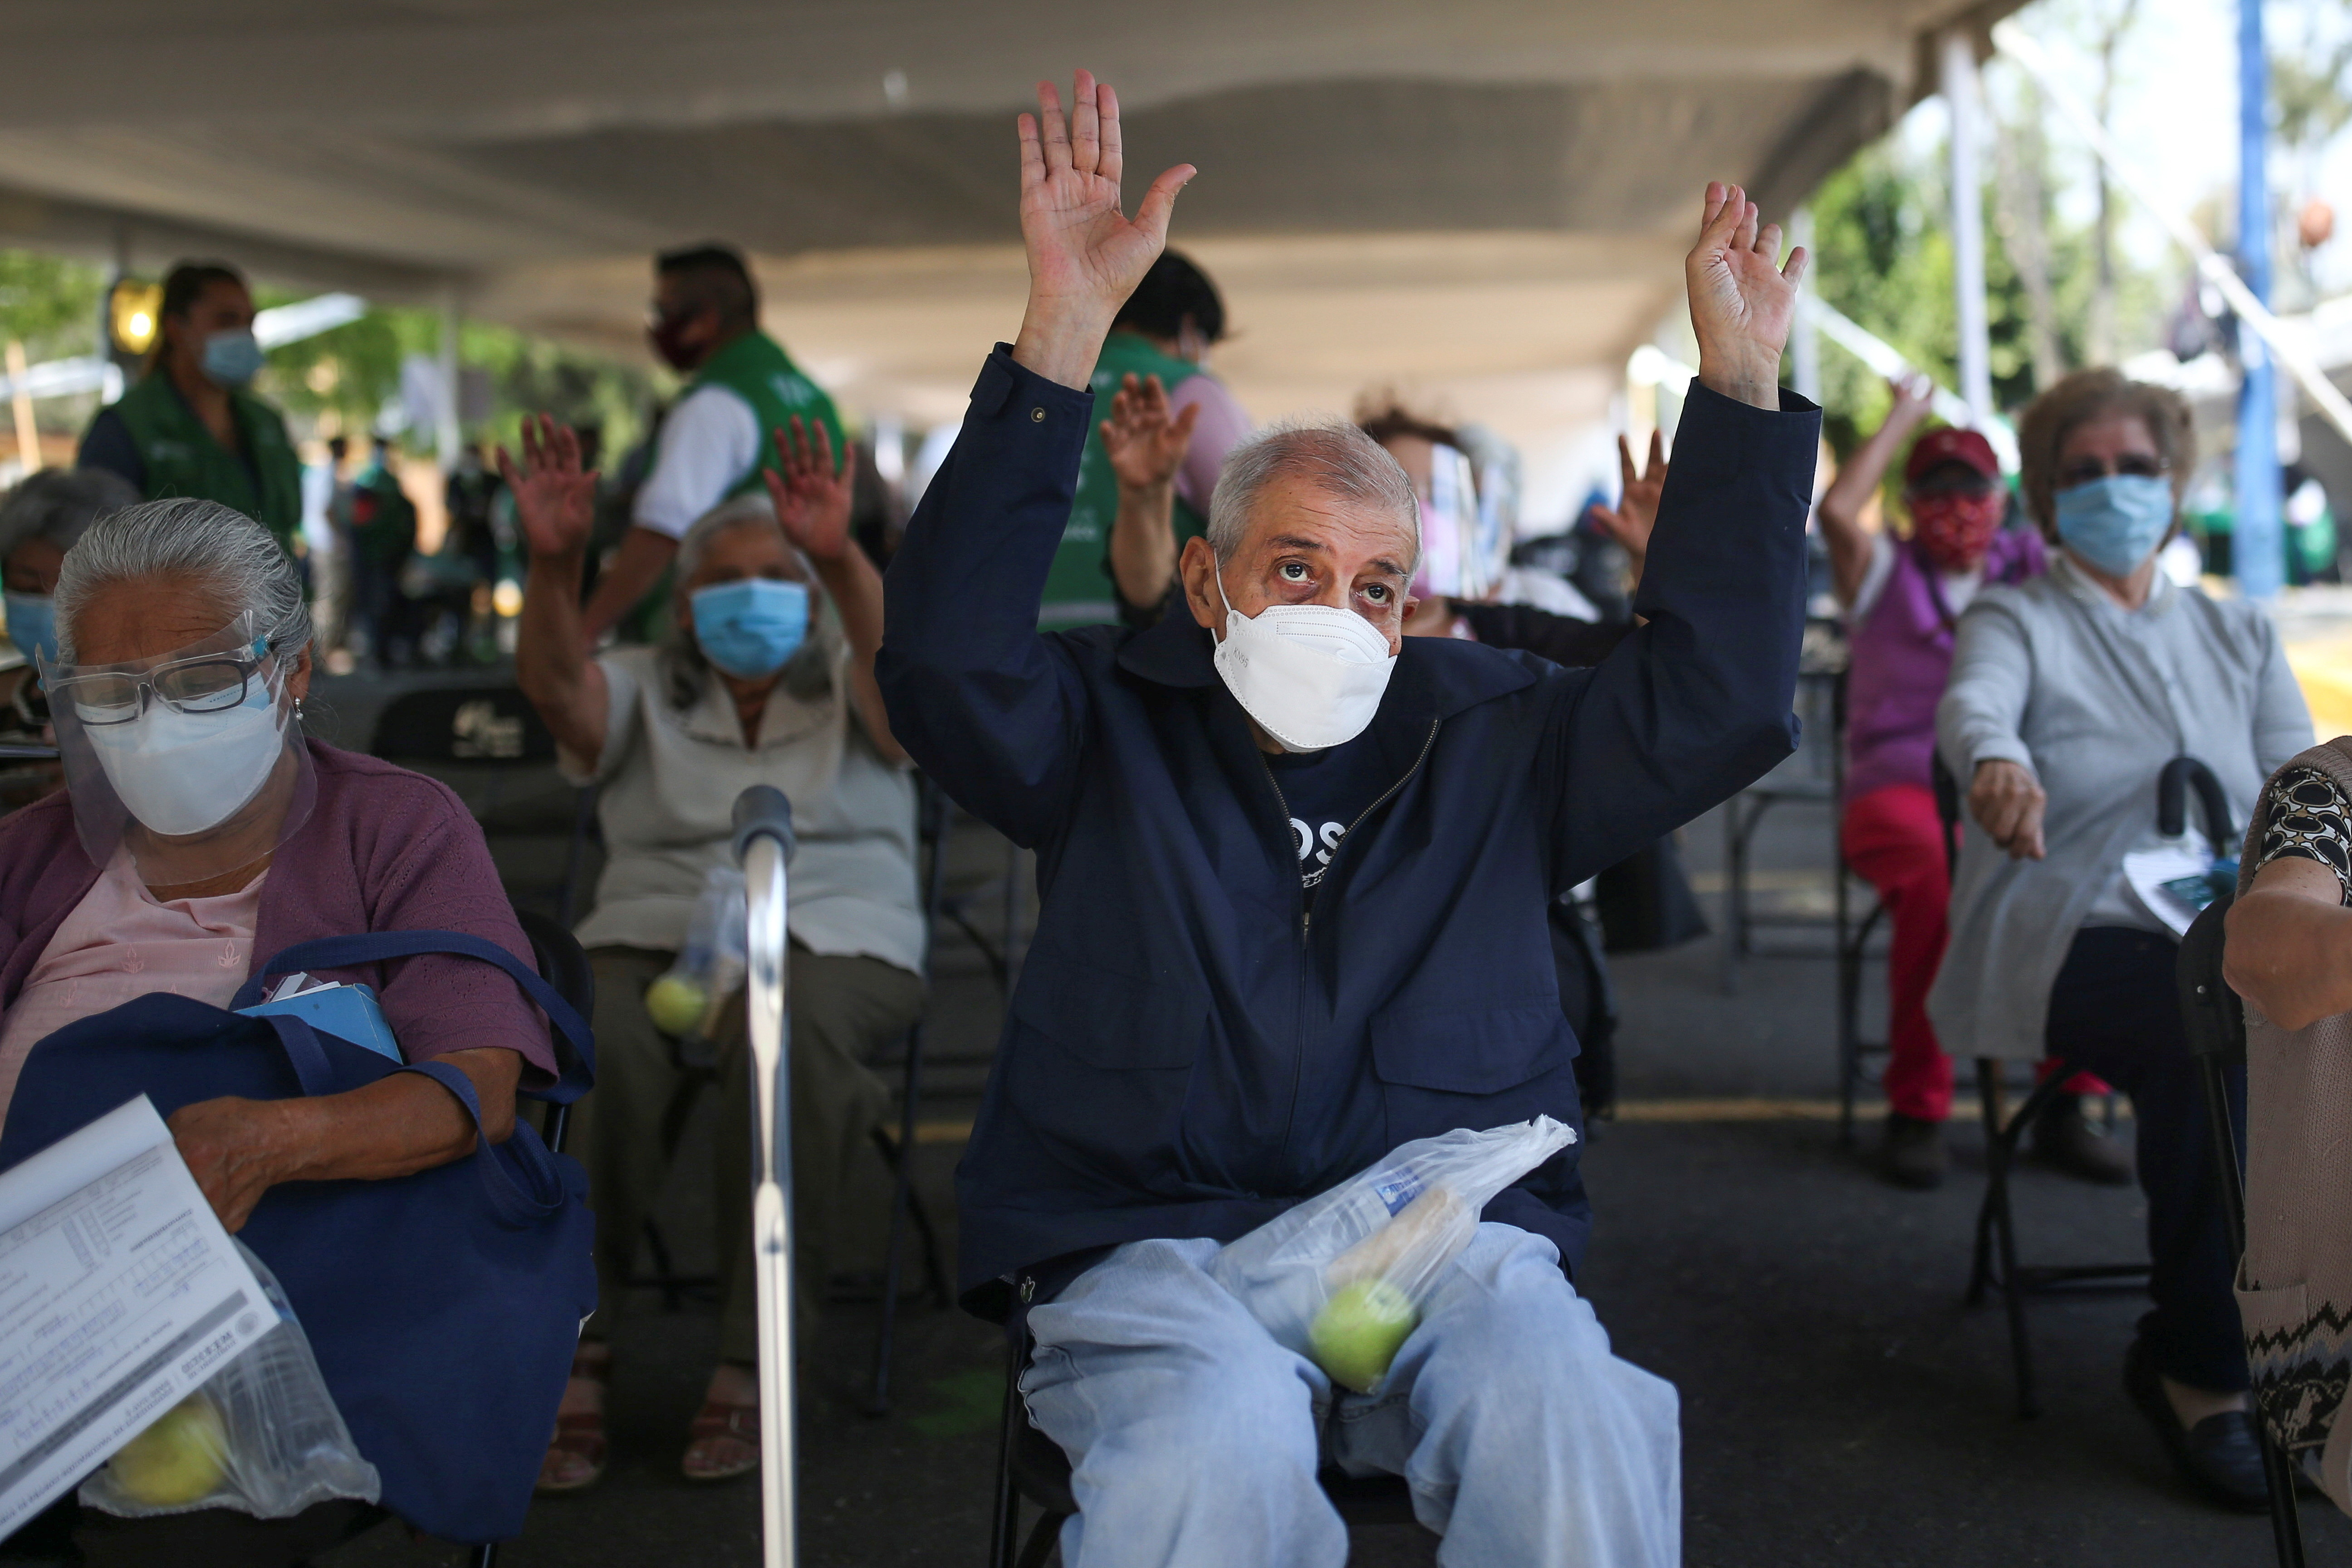 An elderly resident exercises after receiving the Sputnik V coronavirus disease (COVID-19) vaccine in Xochimilco on the outskirts of Mexico City, Mexico March 3, 2021. REUTERS/Edgard Garrido - RC2Y3M9A9CL6